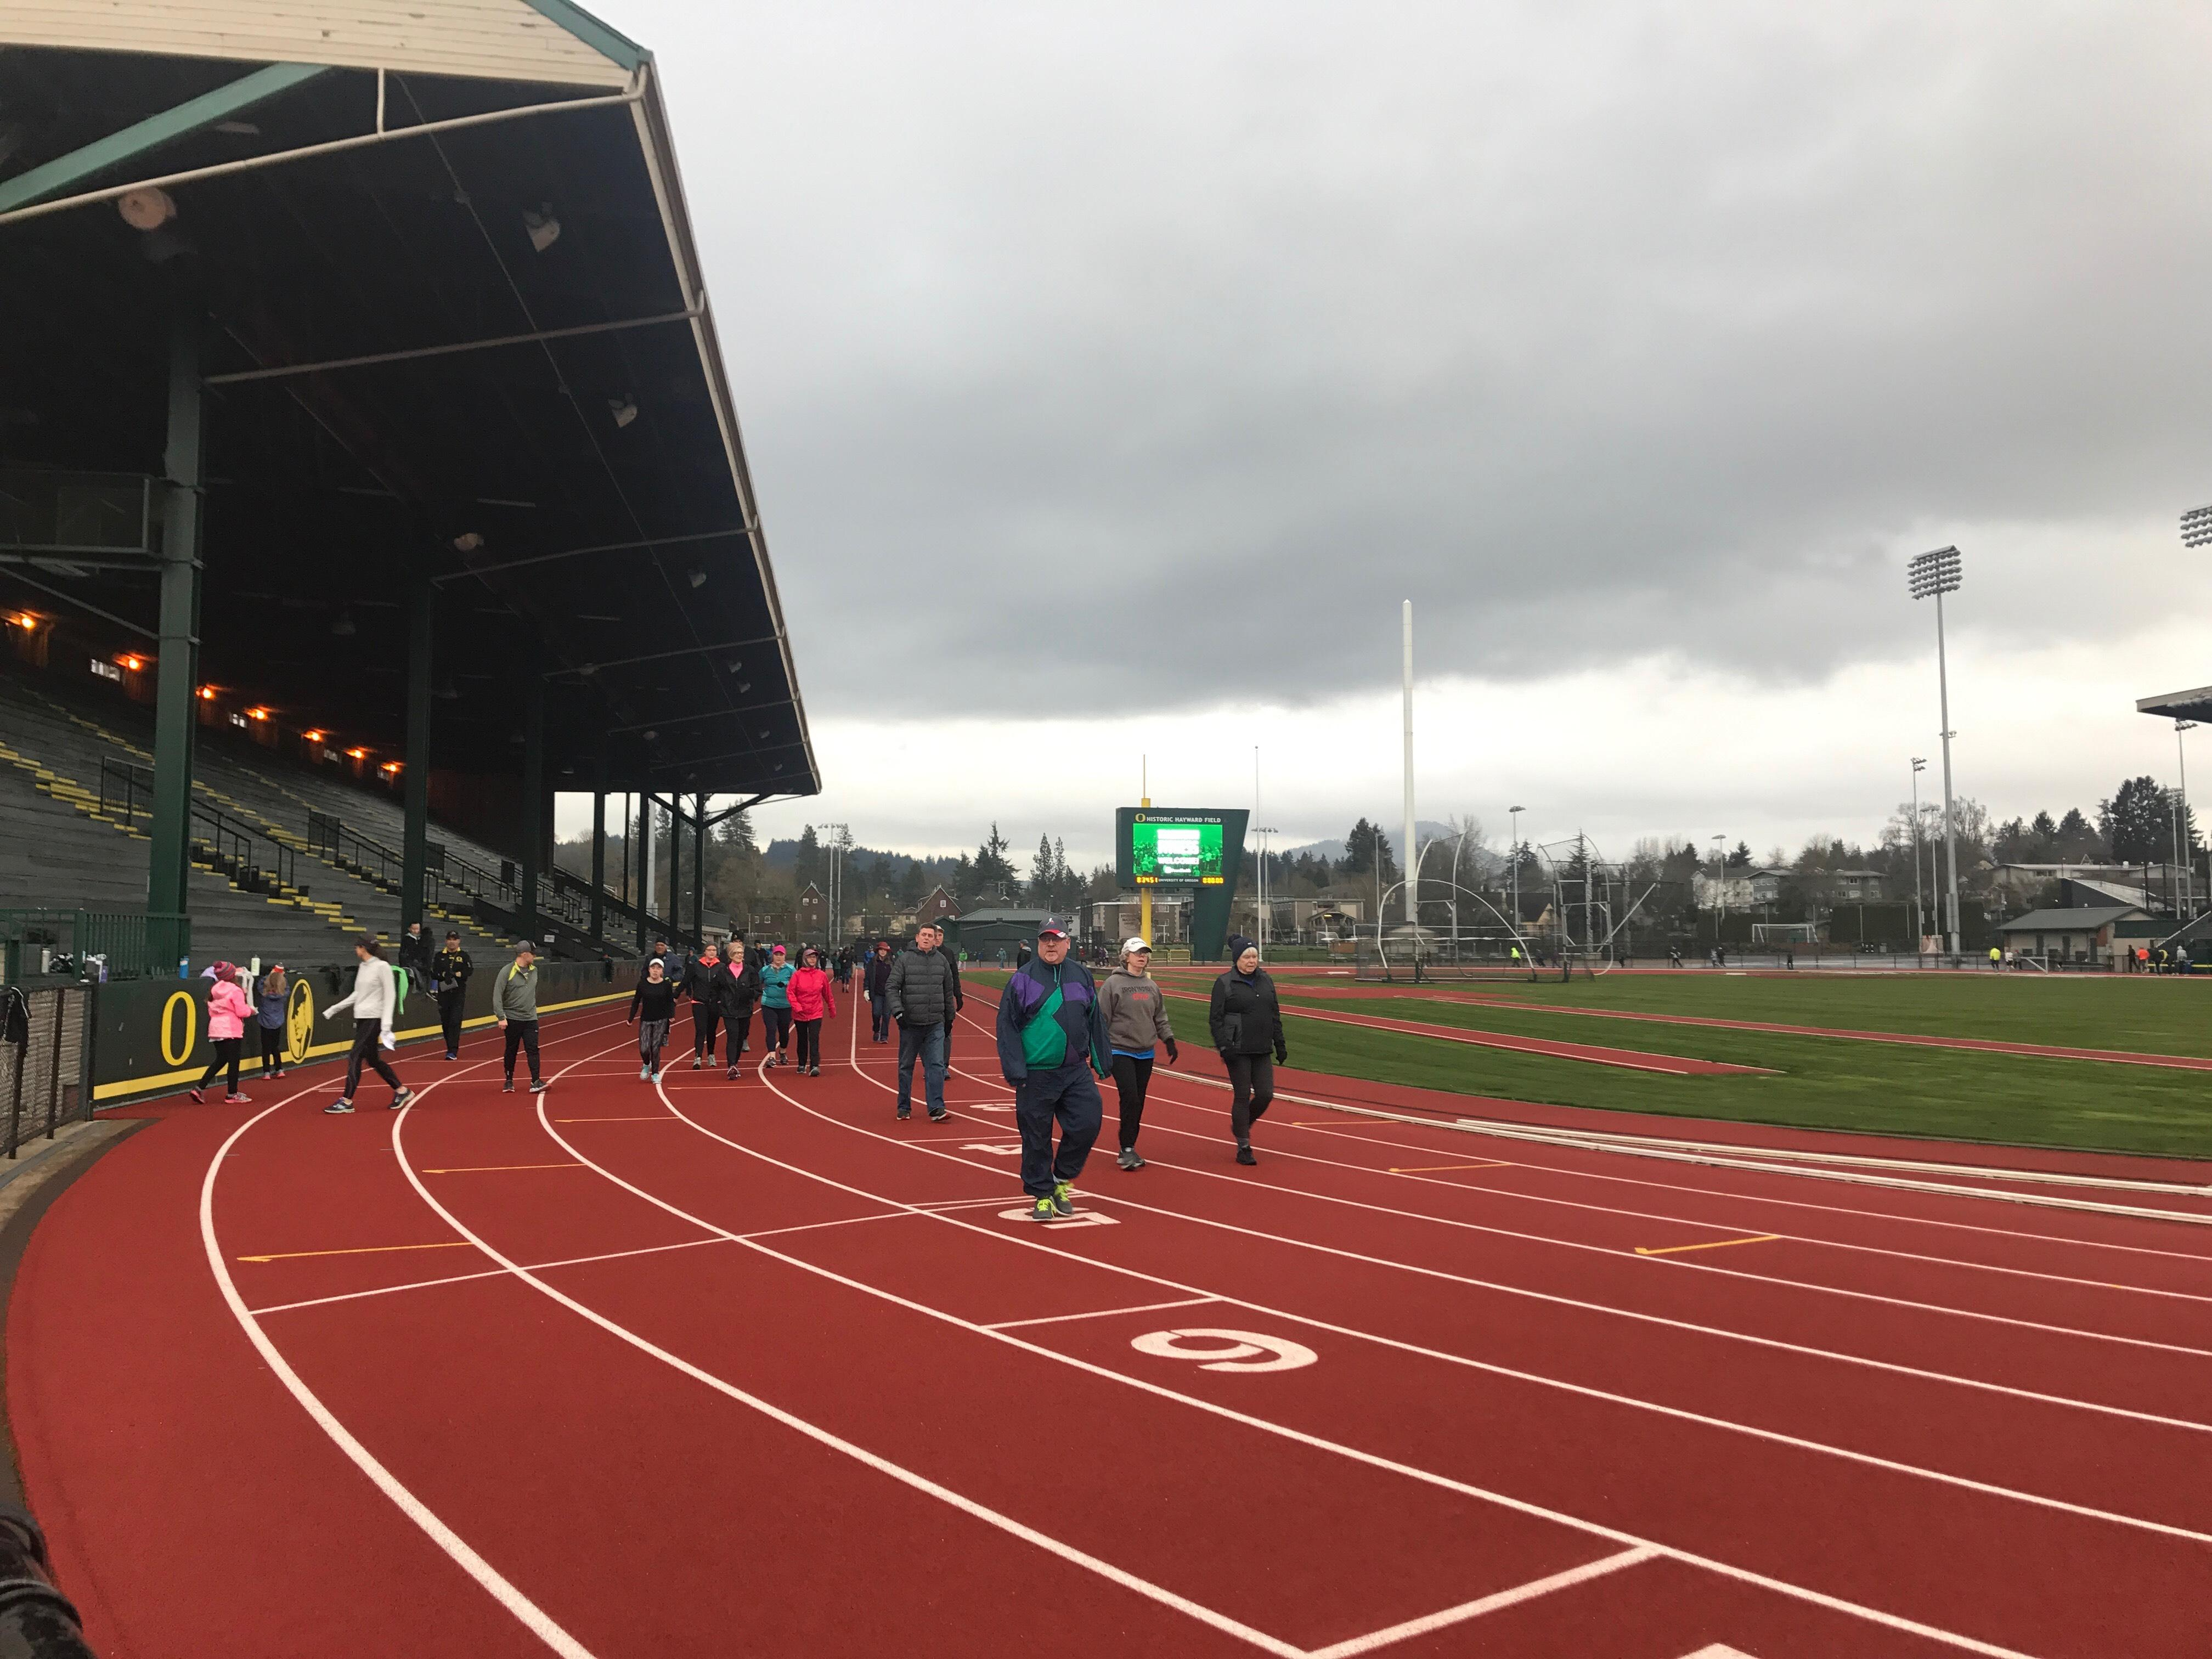 Tracktown Fitness is a 14-week program, hosted at Hayward Field every Sunday. For more information on the program, you can visit{&amp;nbsp;}<a  href=&quot;https://www.gotracktownusa.com/events/tracktown-fitness/&quot; target=&quot;_blank&quot; title=&quot;https://www.gotracktownusa.com/events/tracktown-fitness/&quot;>www.gotracktownusa.com.</a>